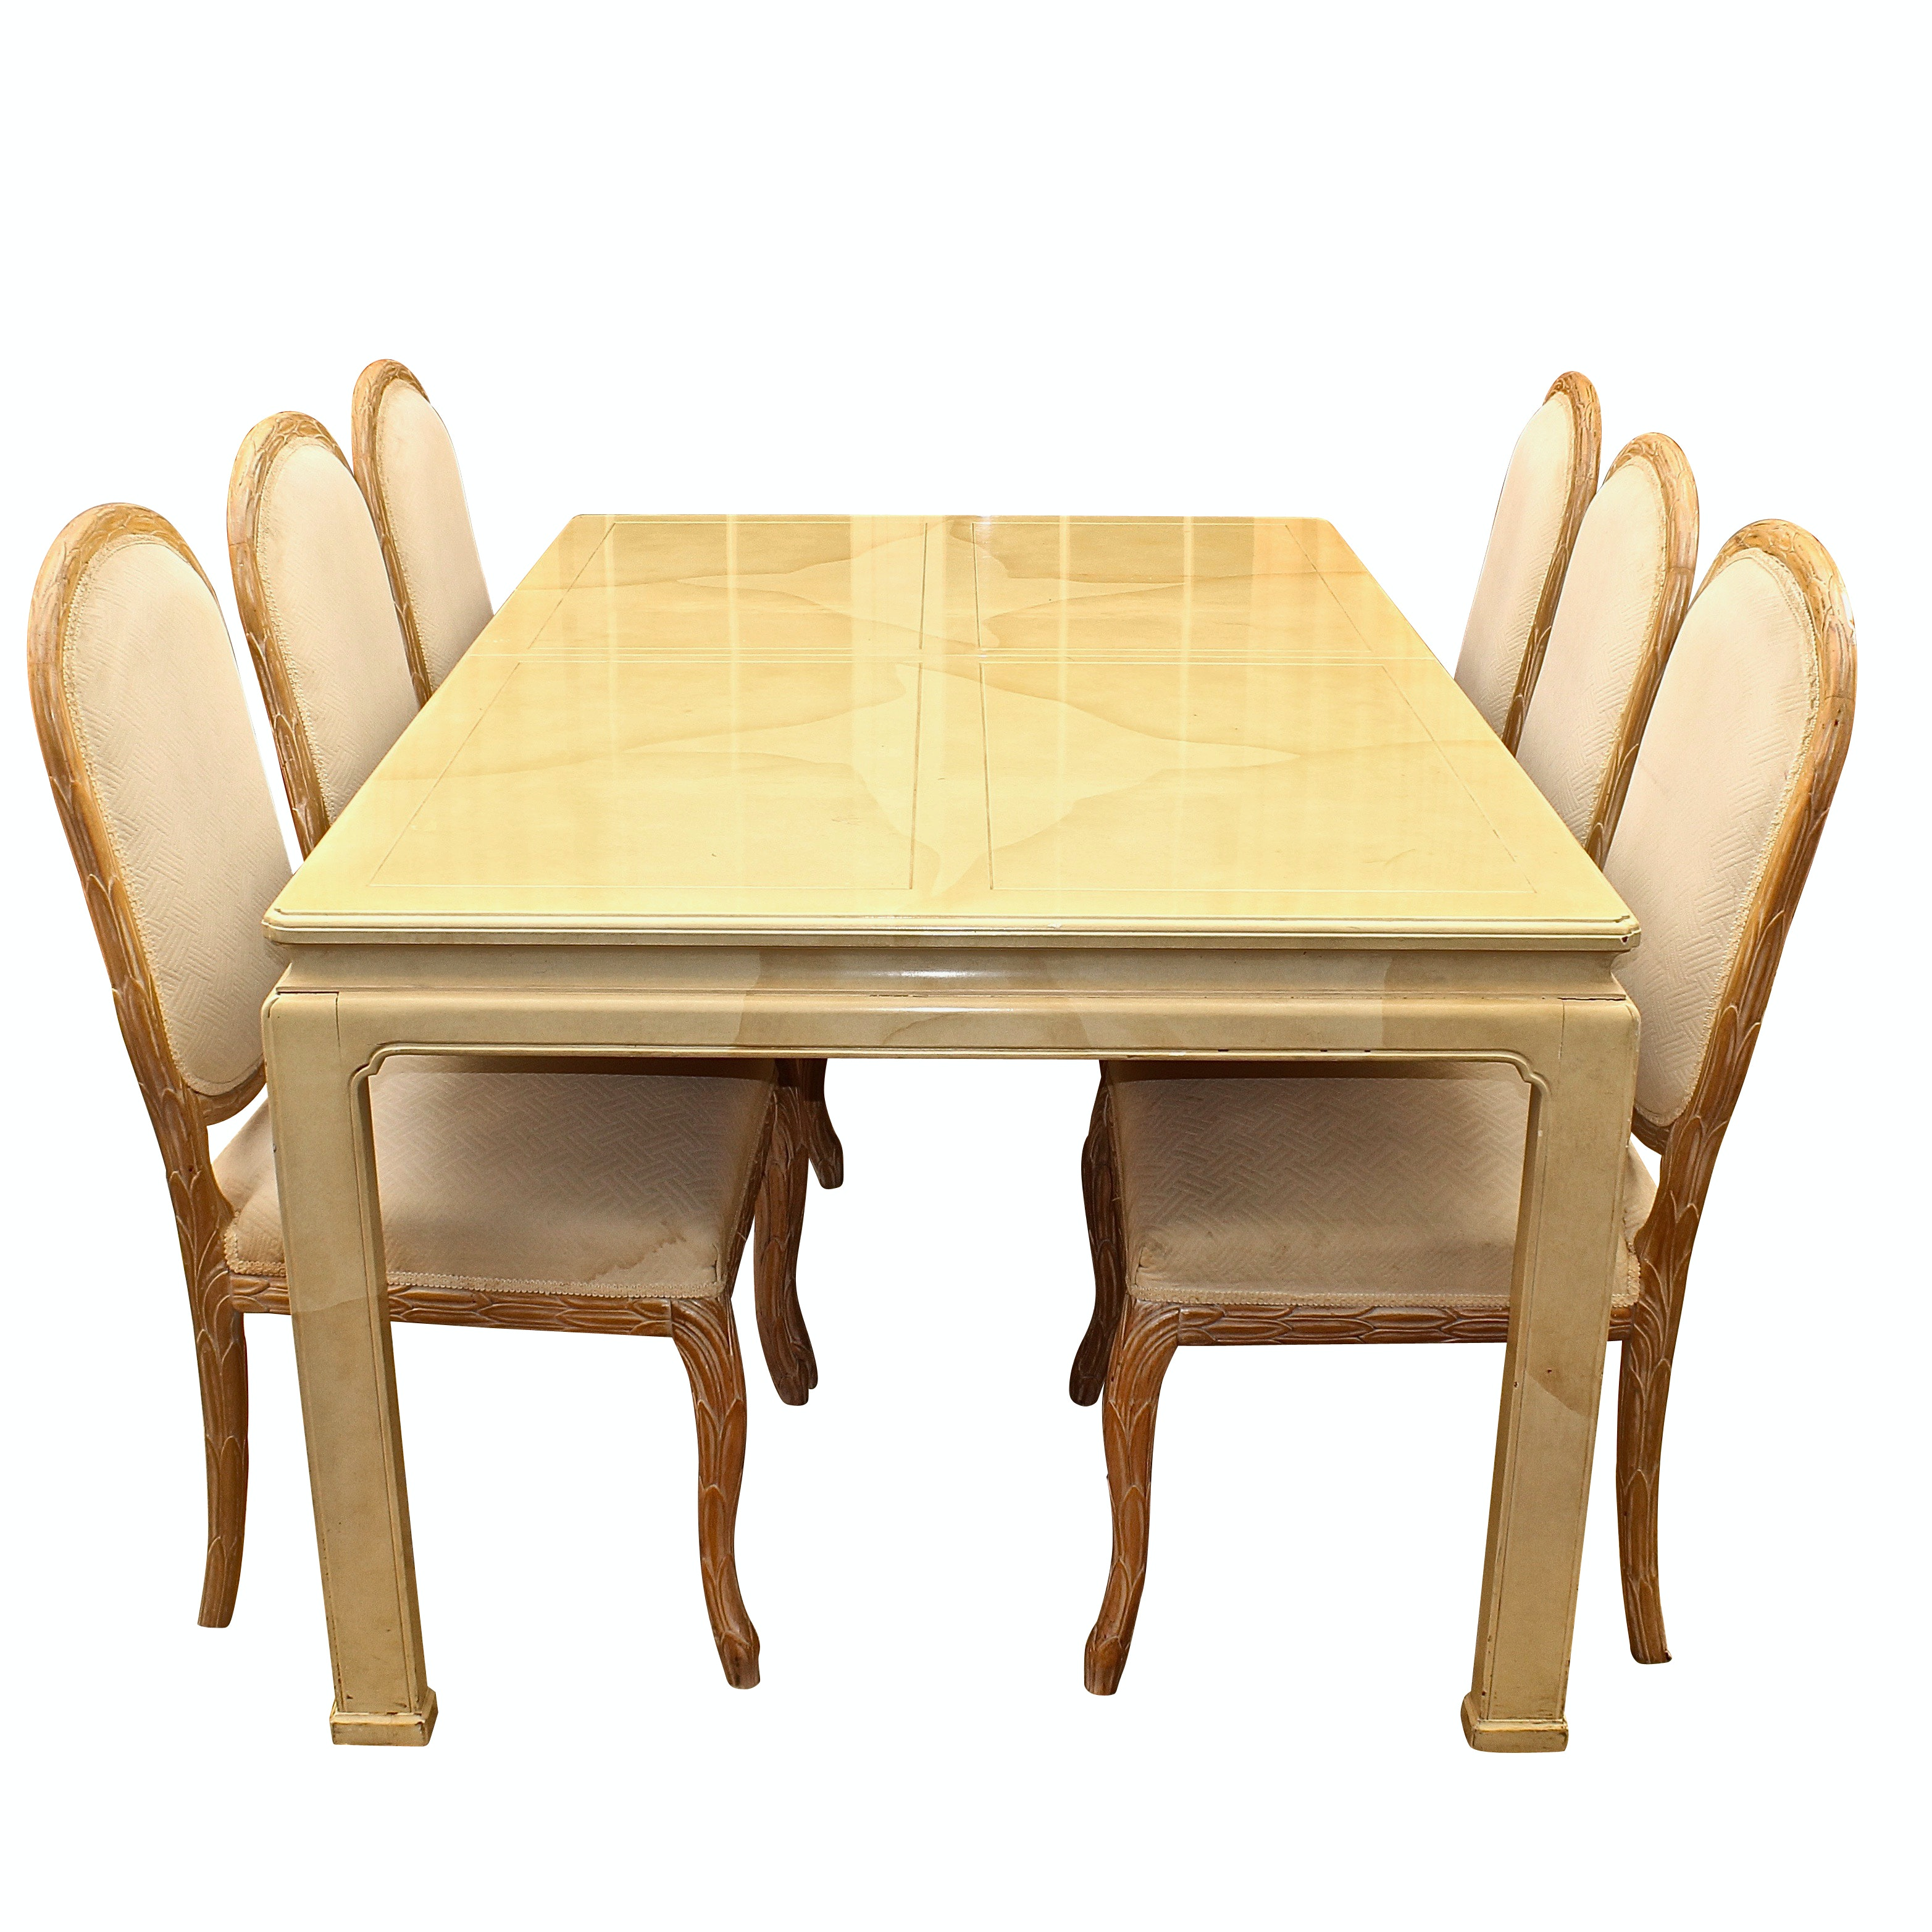 Wood Laminate Dining Table with Upholstered Side Chairs, Late 20th Century